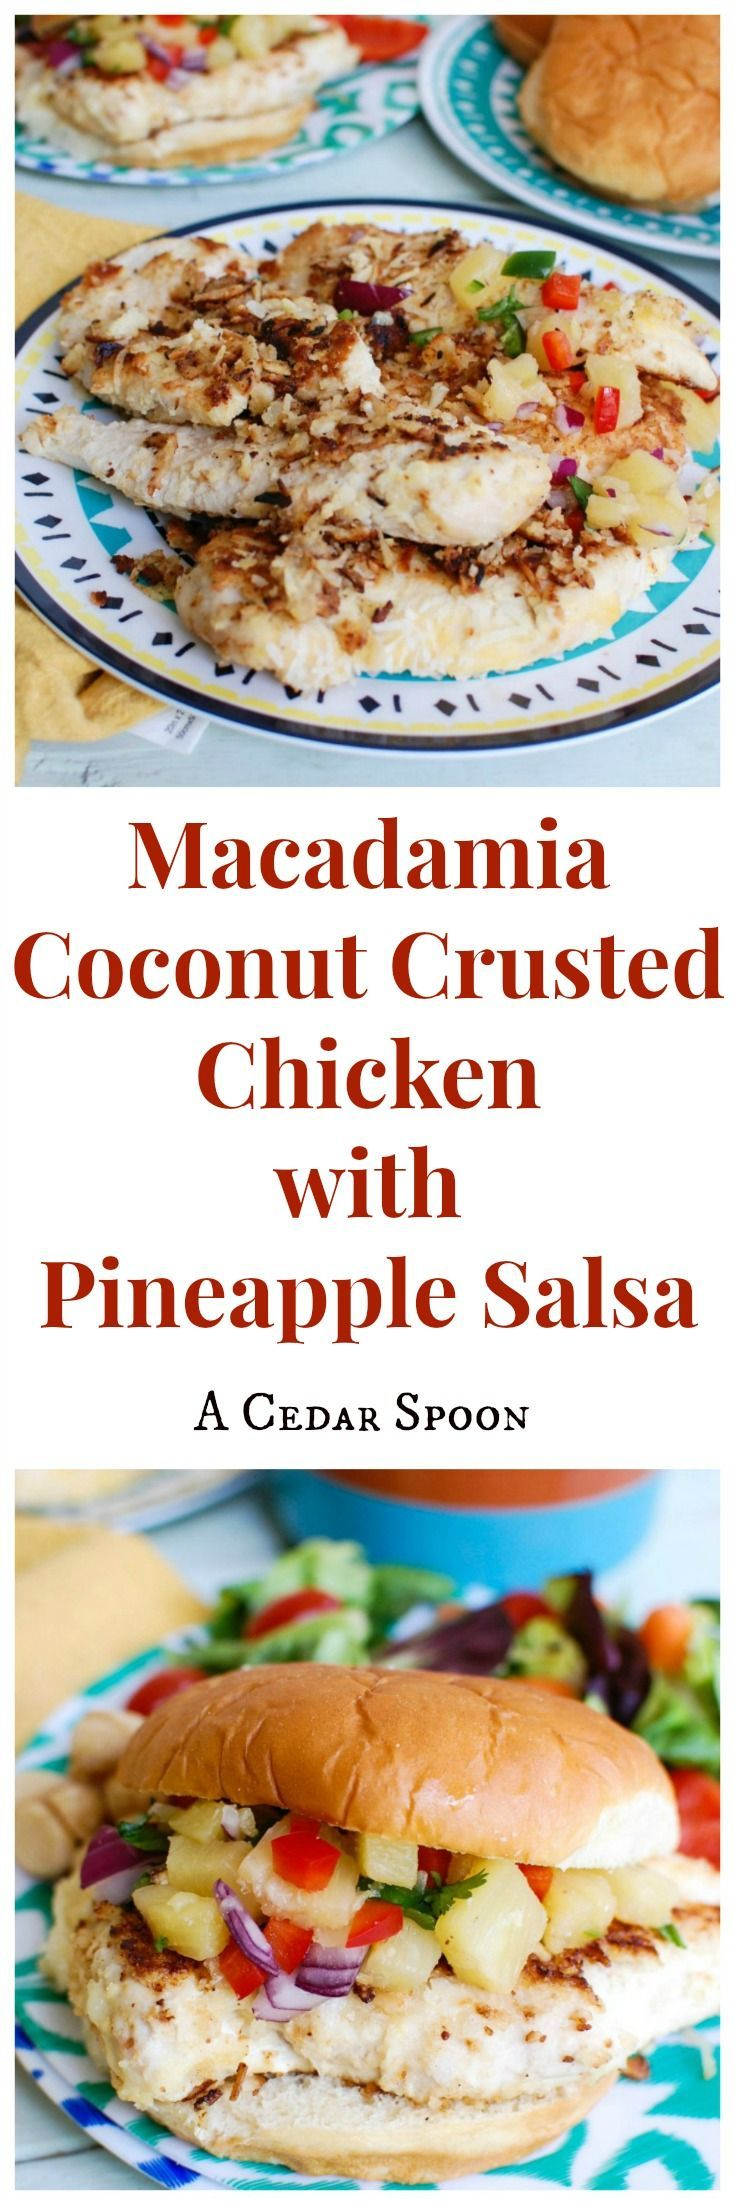 Macadamia Coconut Crusted Chicken with Pineapple Salsa brings fresh tropical flavors together to create a crispy, sweet crusted chicken using macadamia nuts and shredded coconut. The chicken works great on sandwiches or over a bed of rice topped with the fresh pineapple salsa. // A Cedar Spoon